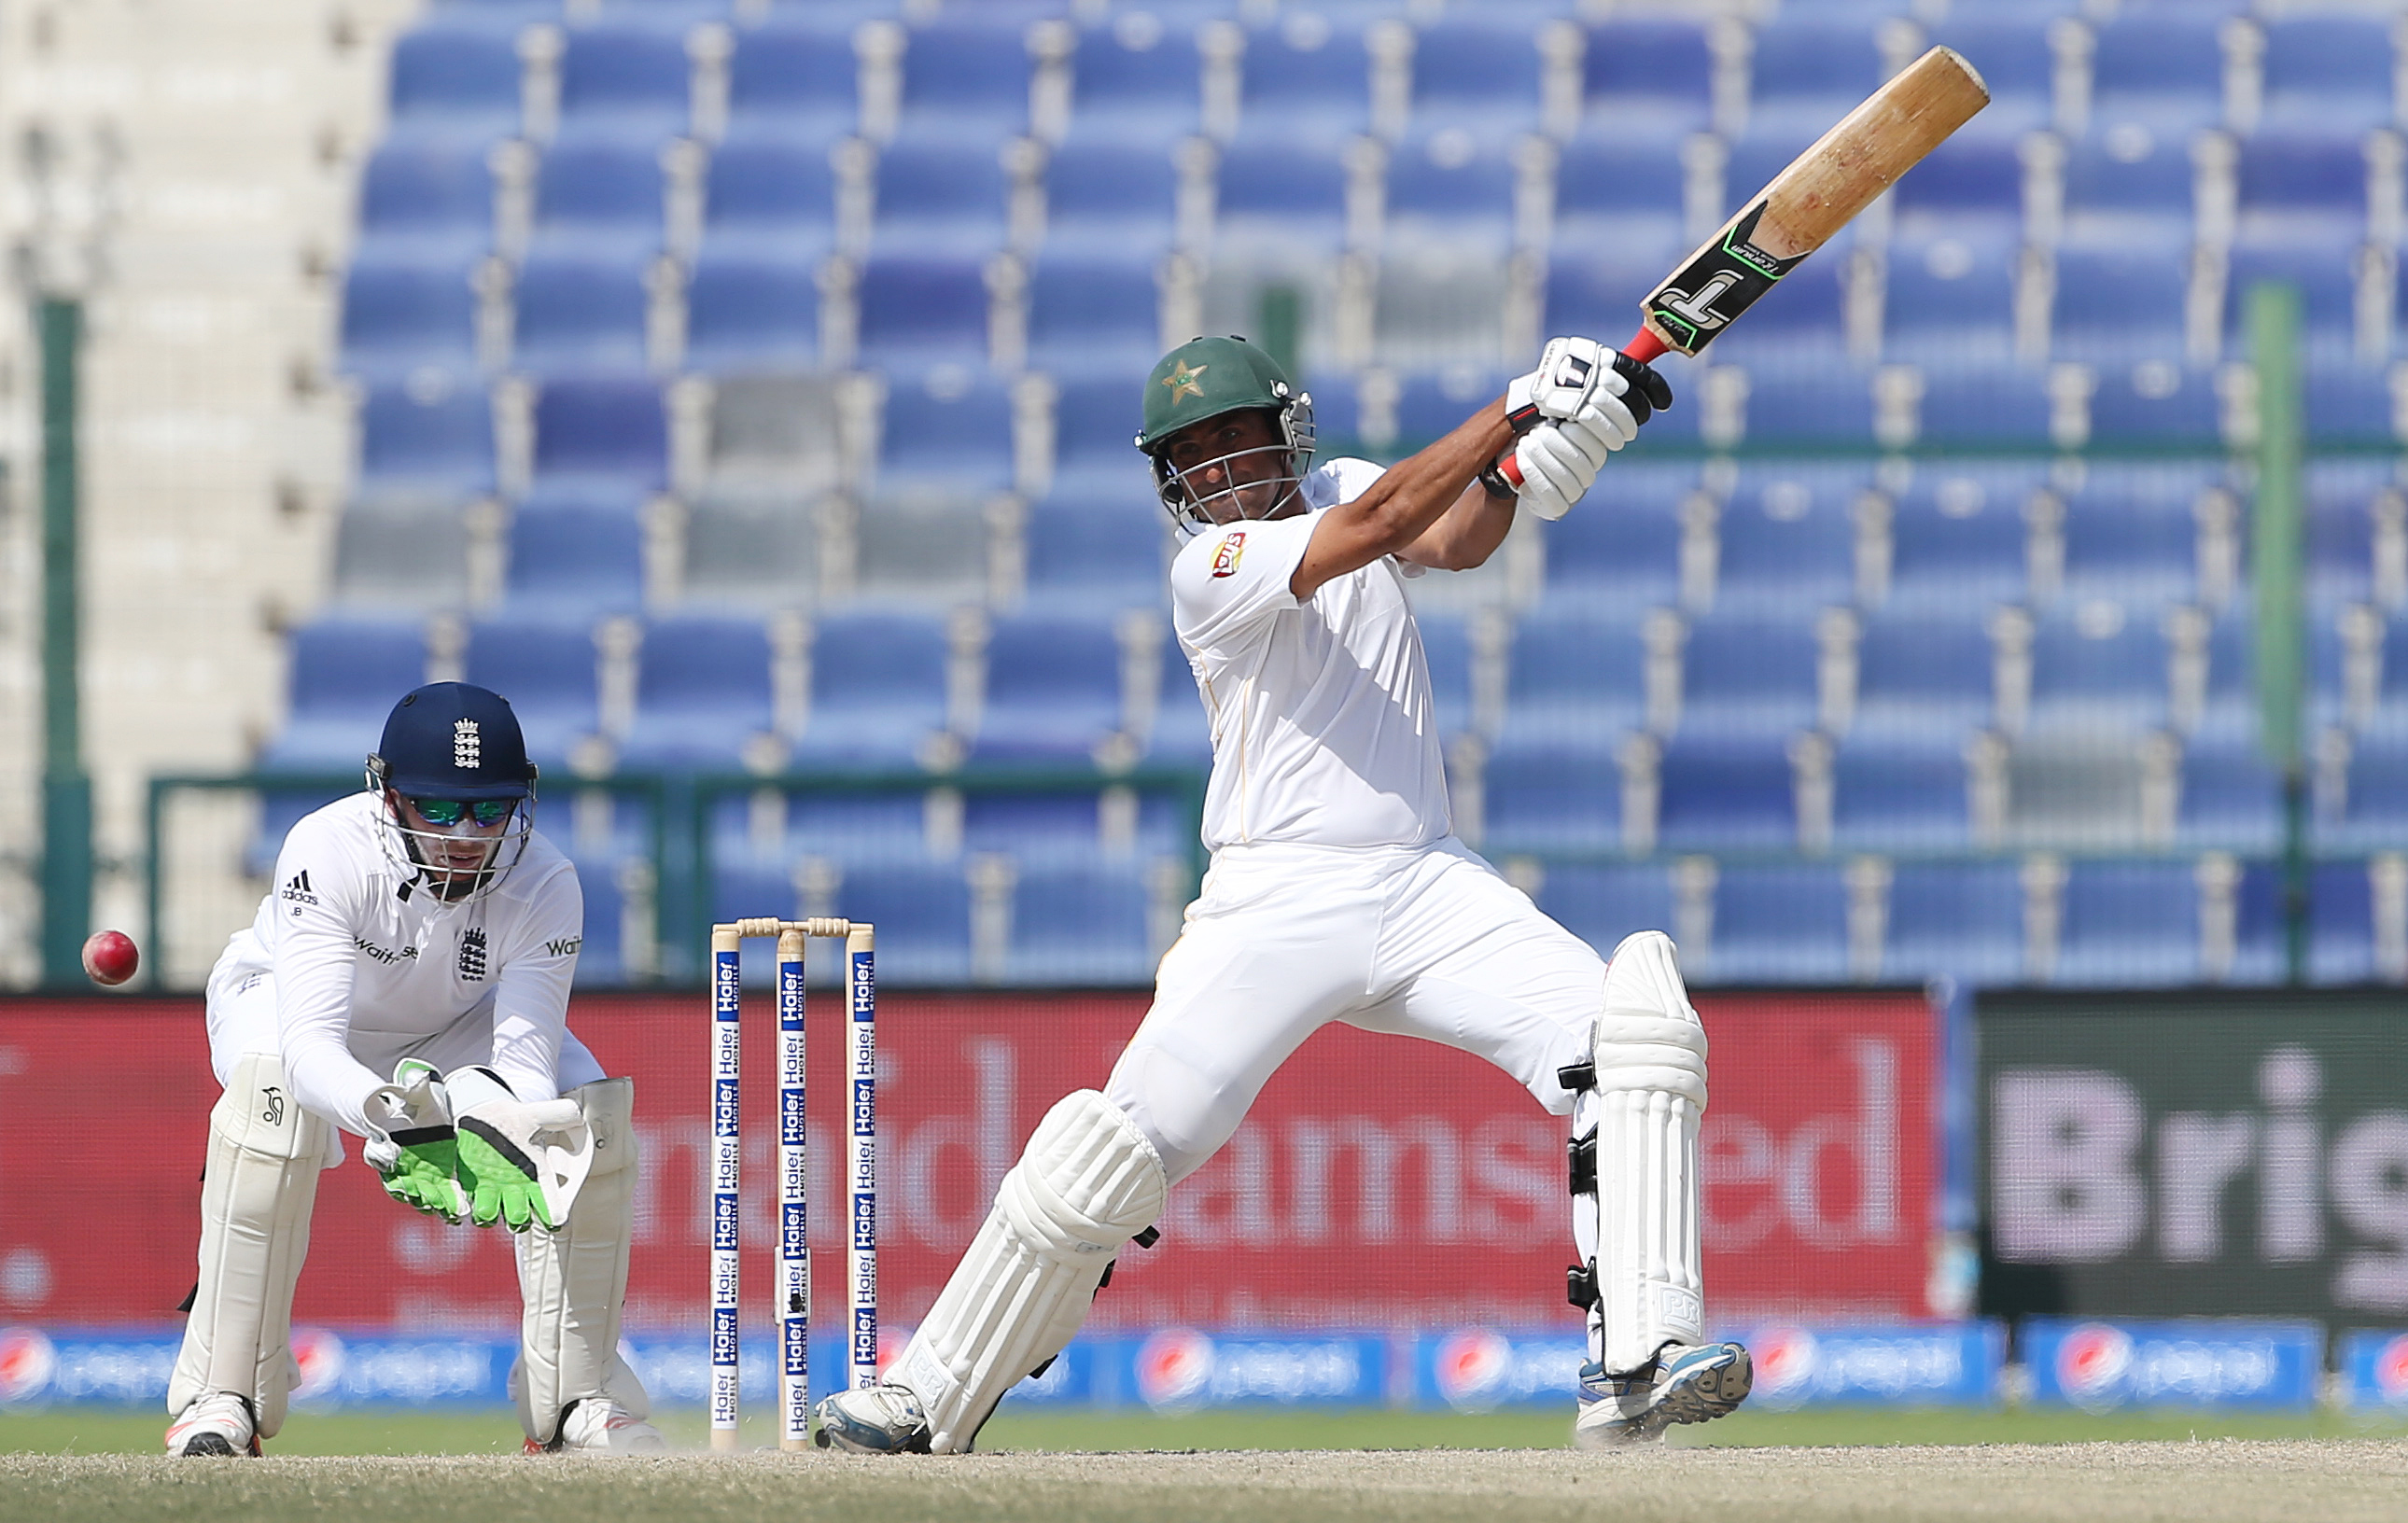 Cricket - Pakistan v England - First Test - Zayed Cricket Stadium, Abu Dhabi, United Arab Emirates - 17/10/15nPakistan's Younis Khan in action as England's Jos Buttler looks onnAction Images via Reuters / Jason O'BriennLivepic